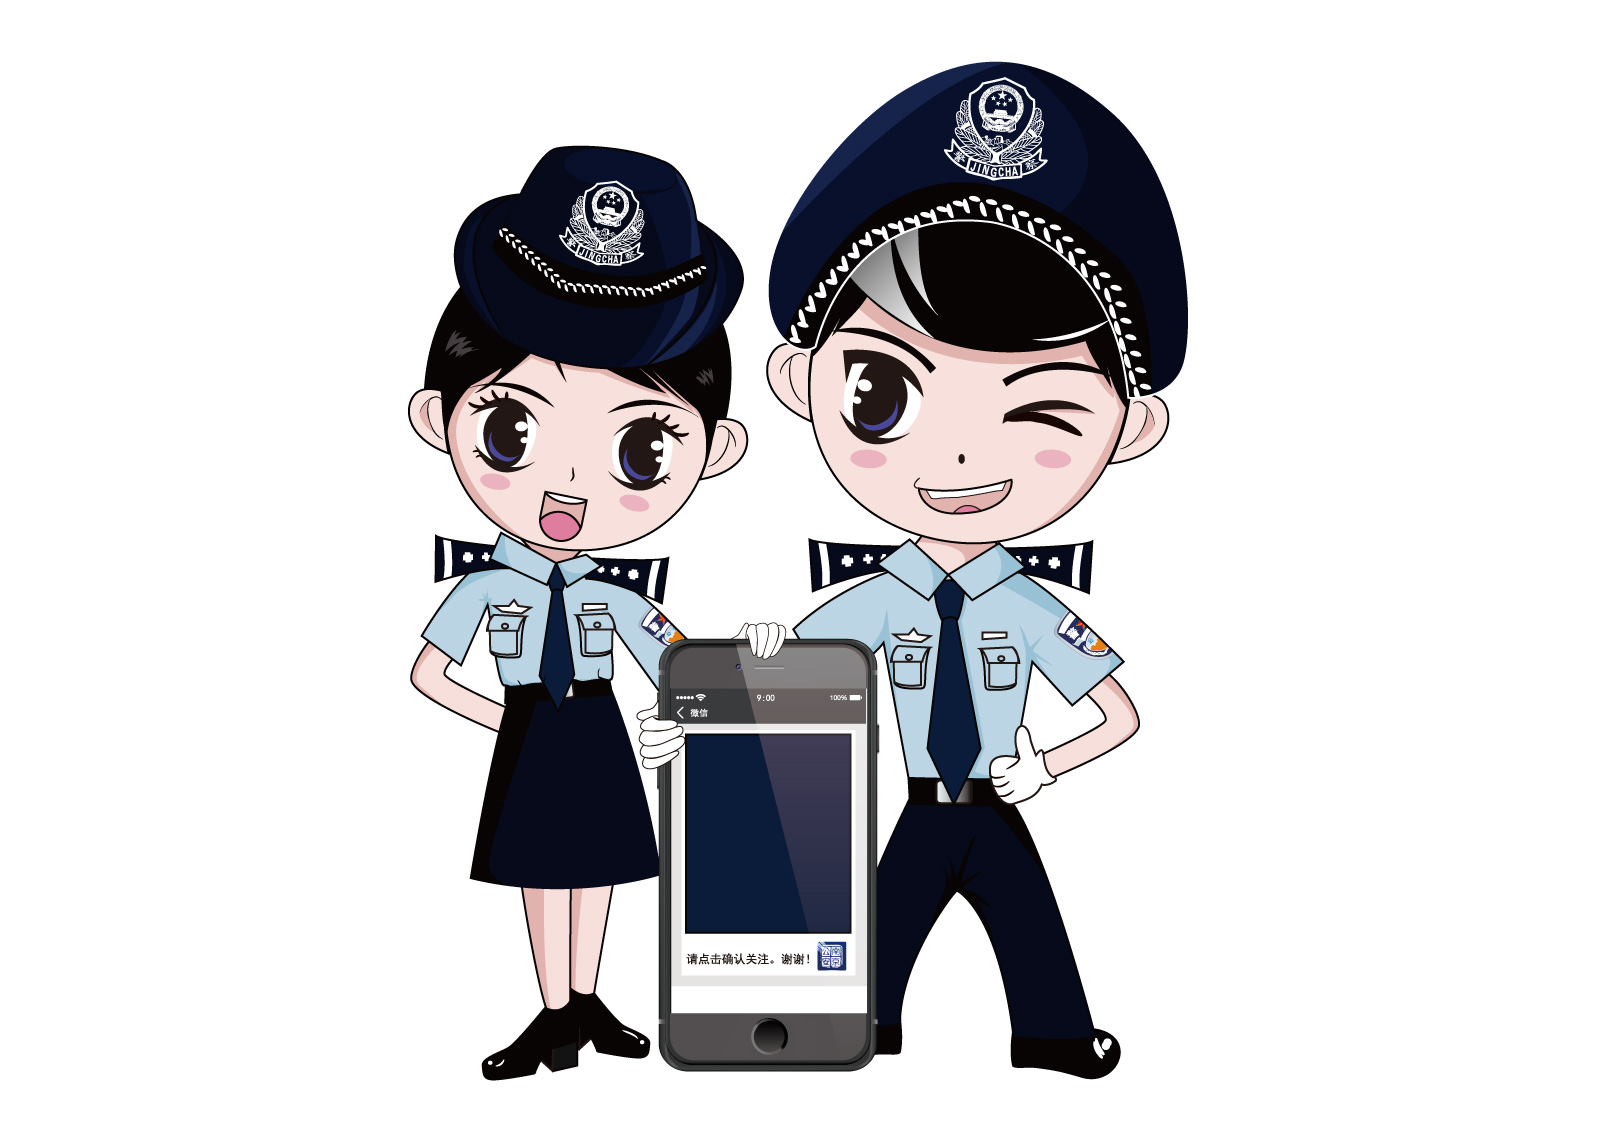 chinesefontdesign.com 2017 03 20 16 29 31 Cute Chinese police cartoon style Illustrations Vectors AI ESP Chinese police vectors Chinese police cdr Chinese police ai